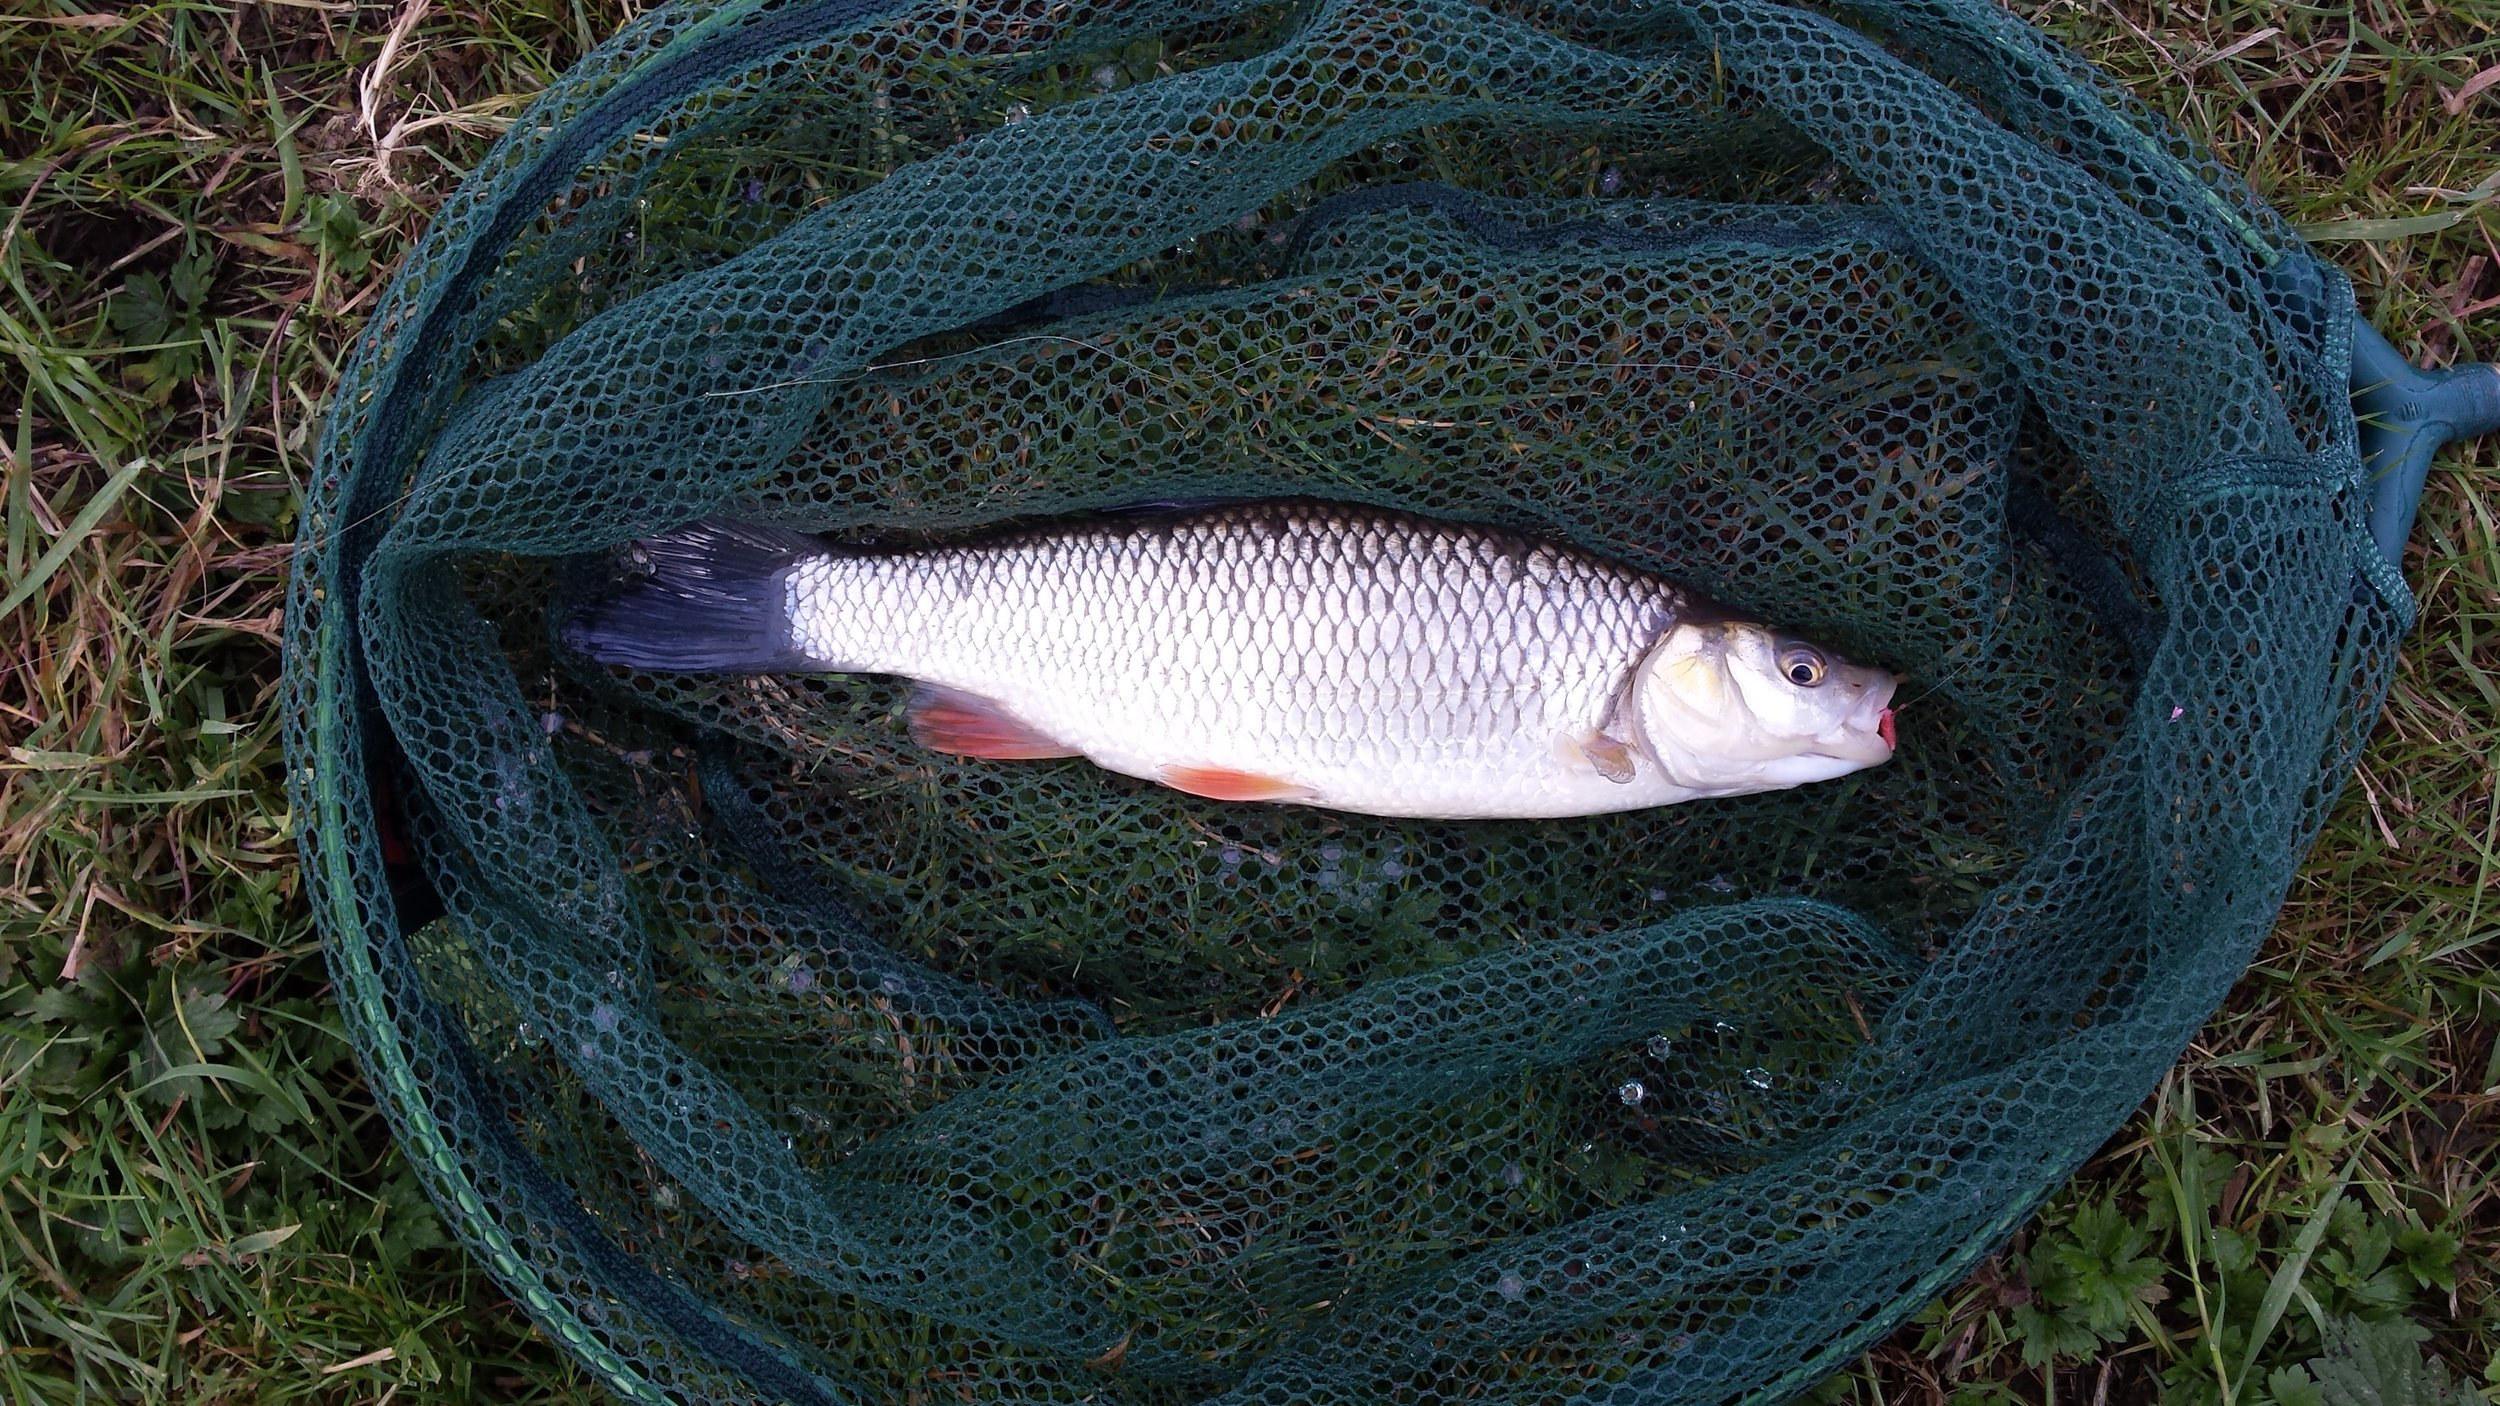 Quality chub of around 12 ounces caught by Mike Shrimpton on trotted red maggot